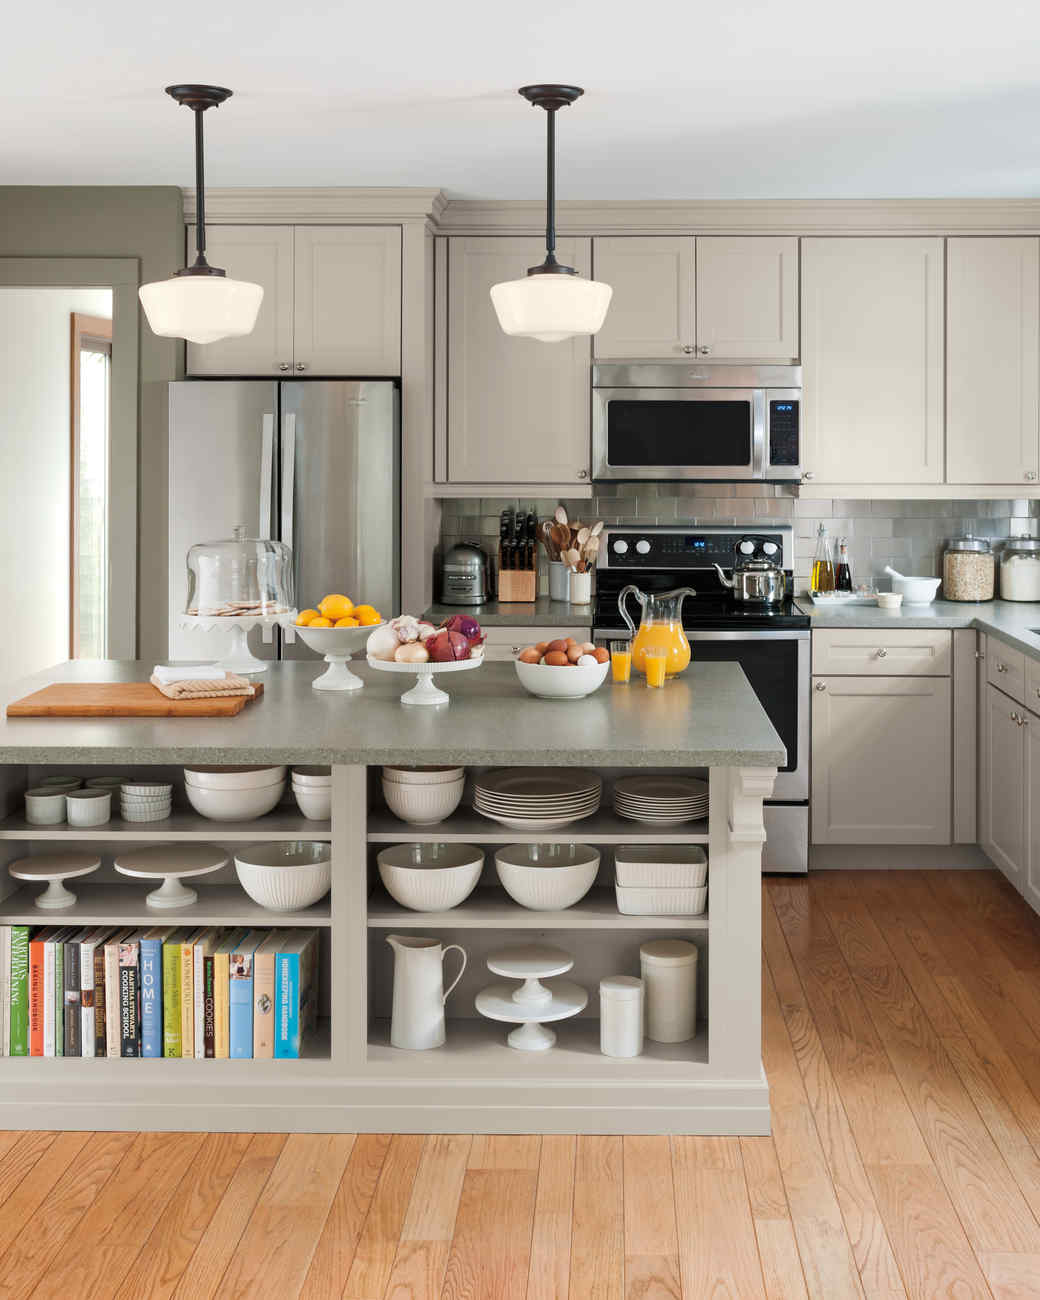 Select Your Kitchen Style | Martha Stewart on cabin bedroom furniture, cabin showers, cabin home, master bedroom cabinets, cabin storage, cabin style kitchens, cabinet hardware on cabinets, cabinet pulls for new cabinets, cabin galley kitchens, cabin design,